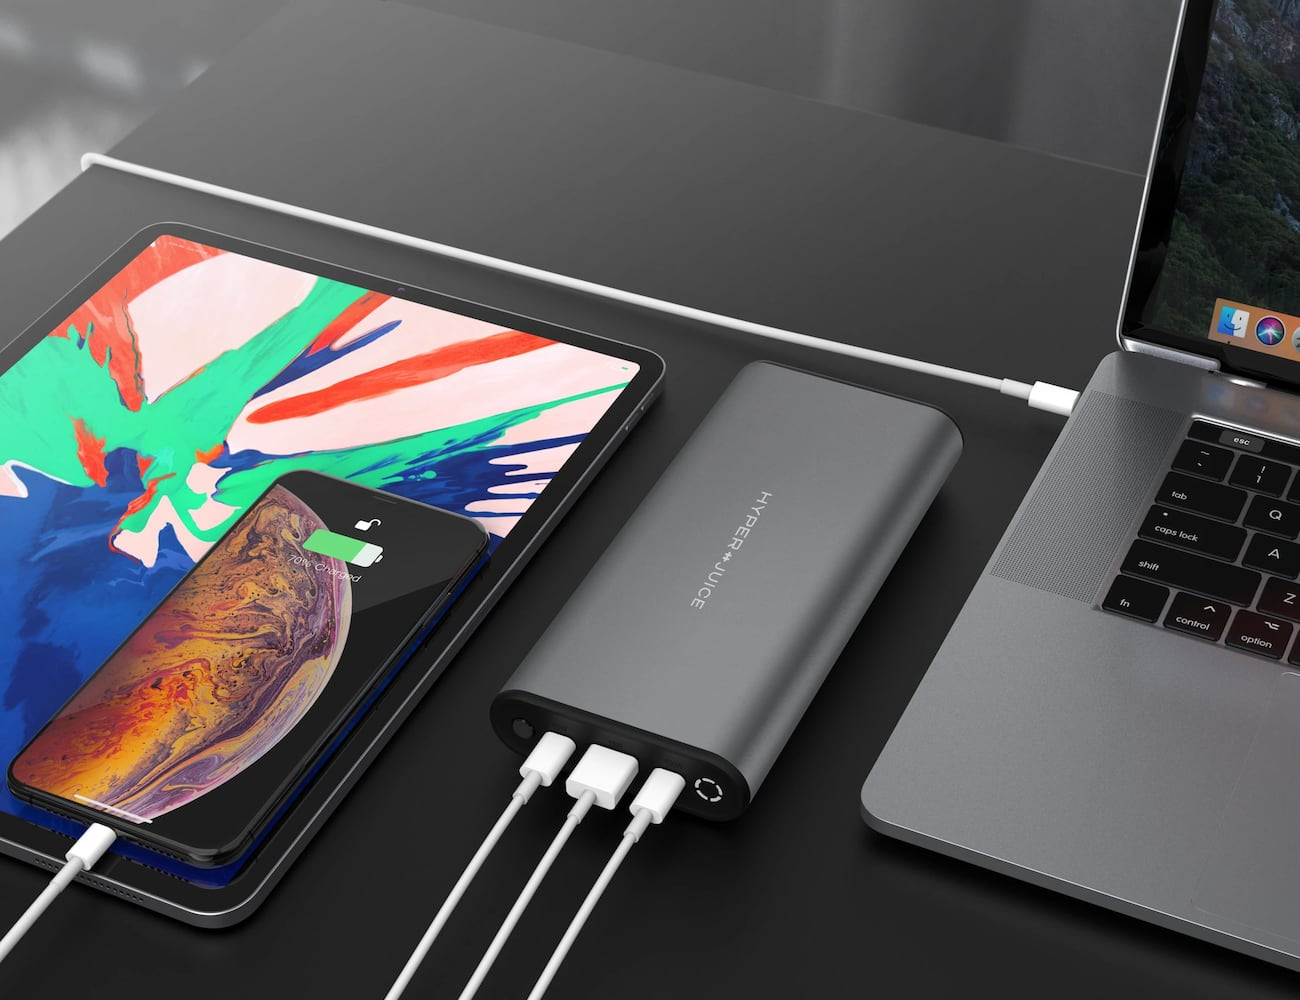 HyperJuice 130W USB-C Airline-Safe Battery Pack gives you an option to quickly charge up